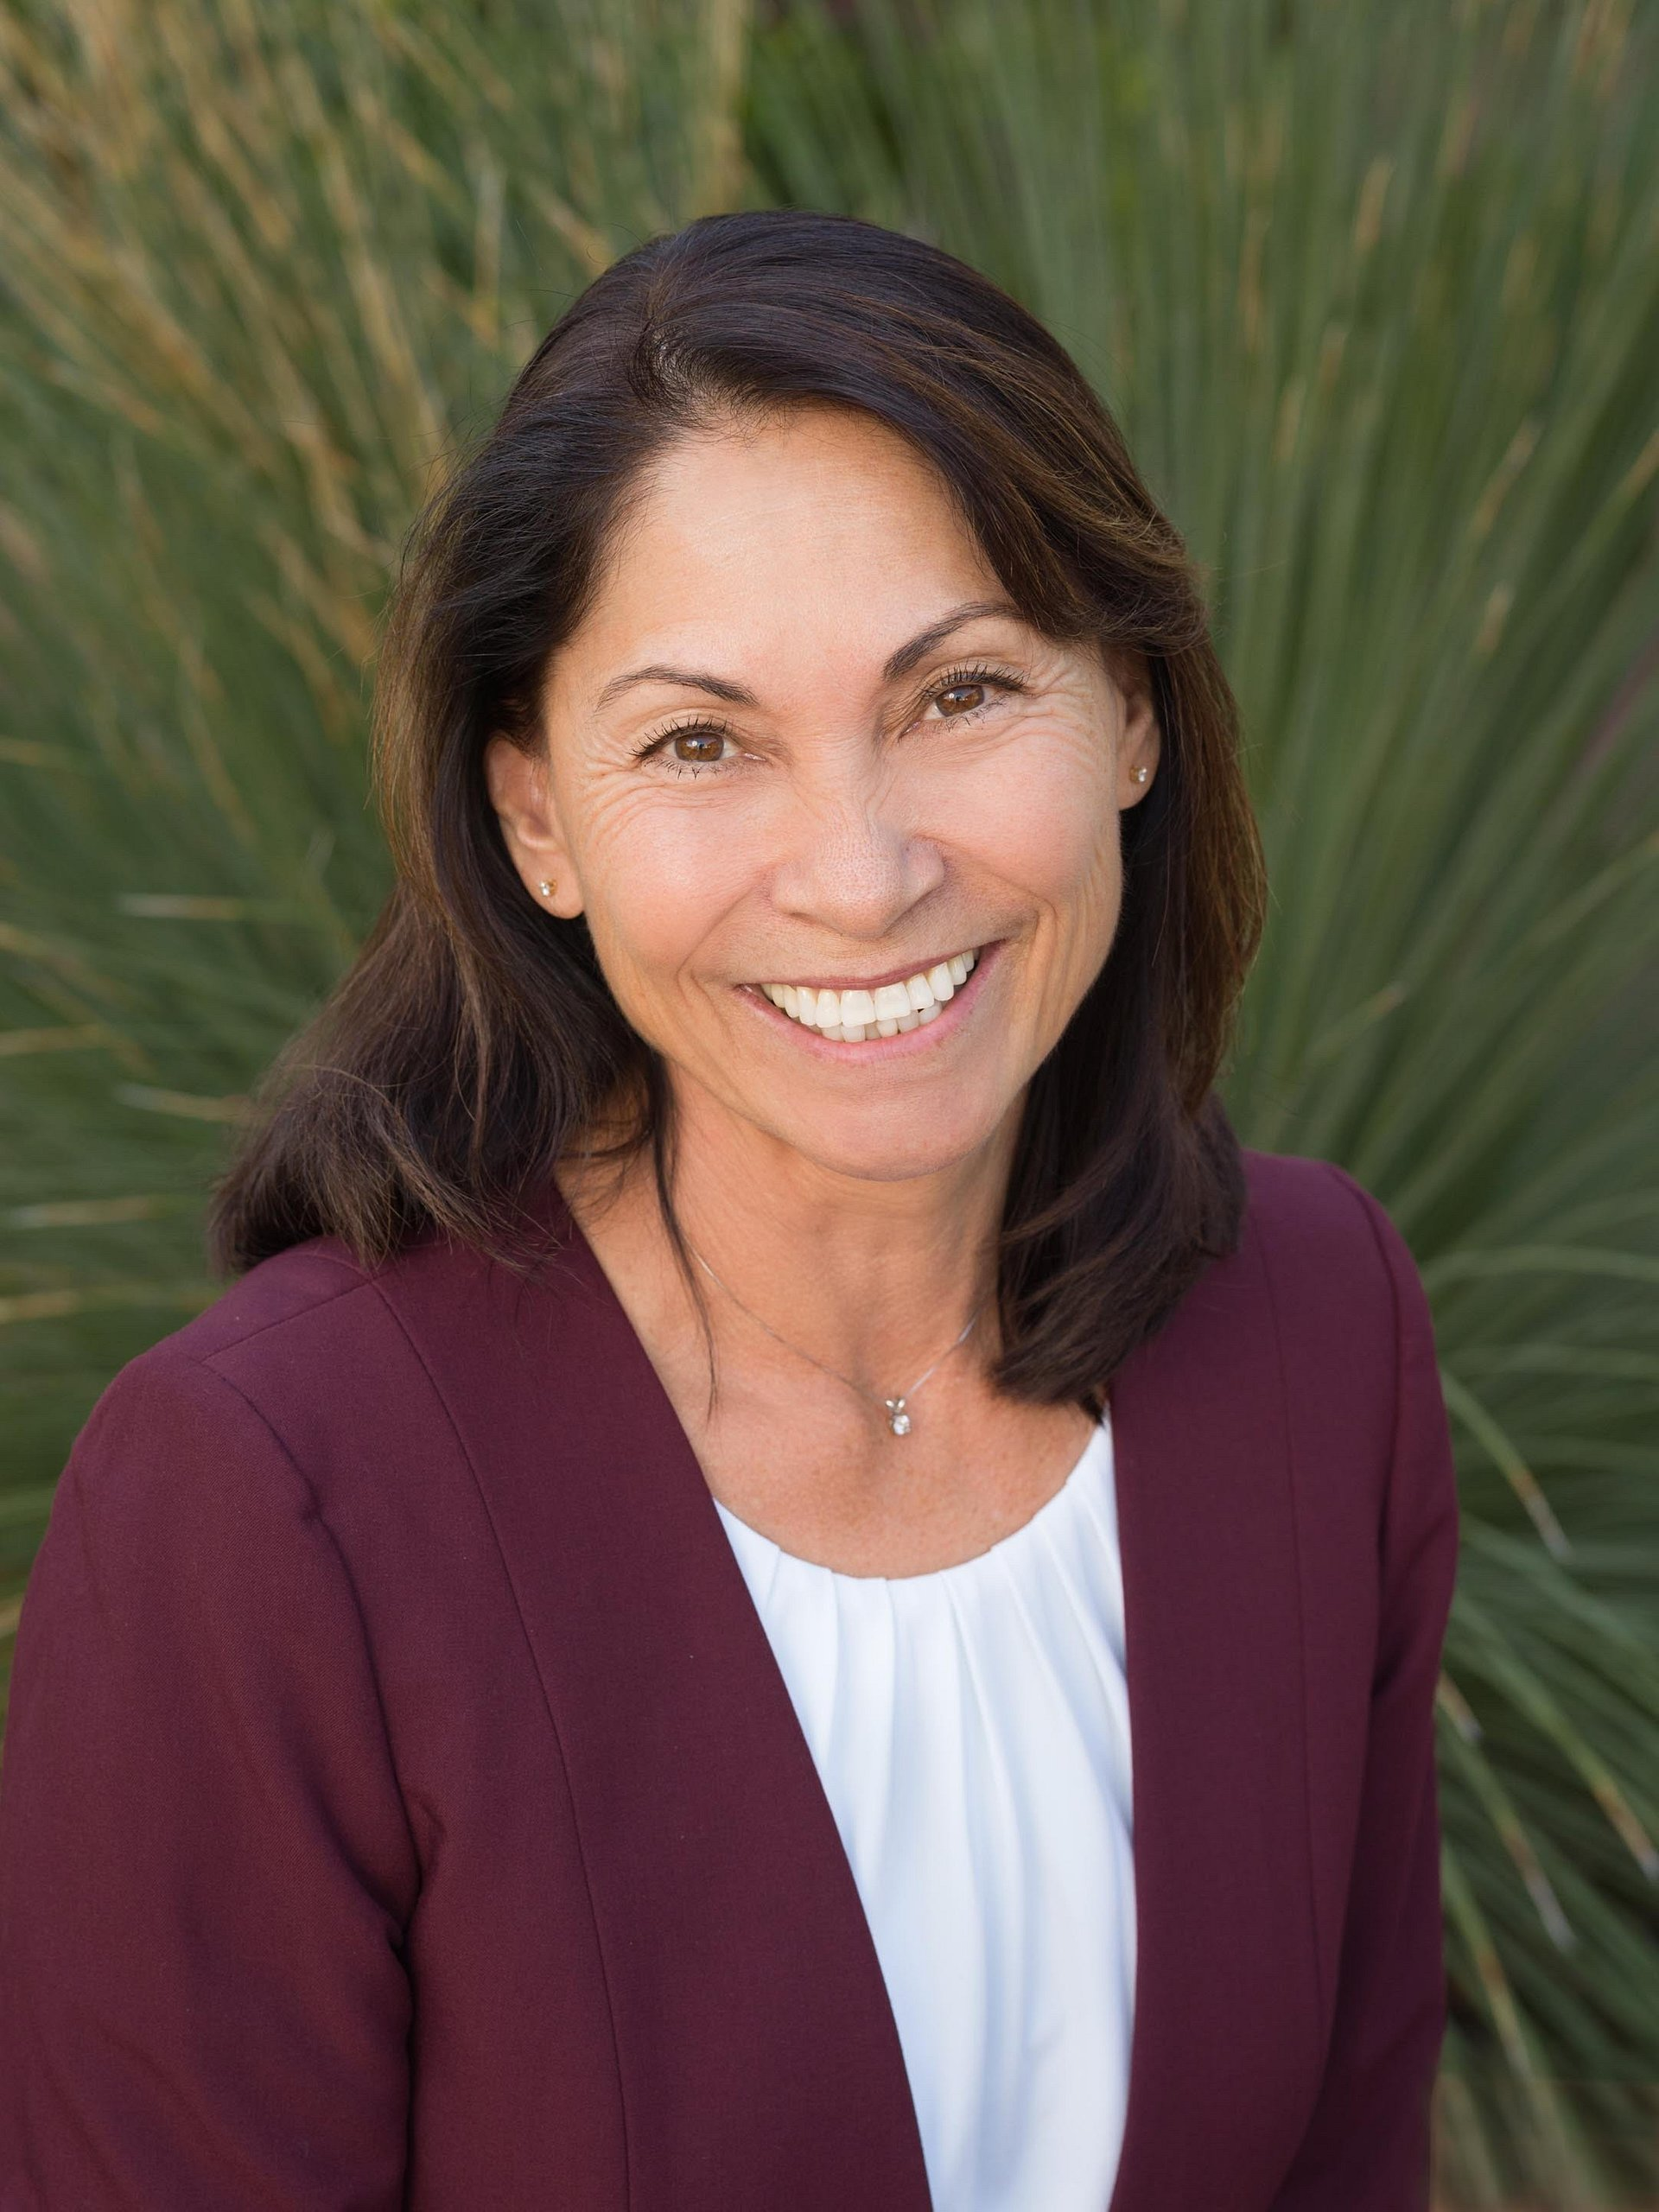 Sherry Tune Affiliates with the Tucson/Foothills Office of Coldwell Banker Residential Brokerage